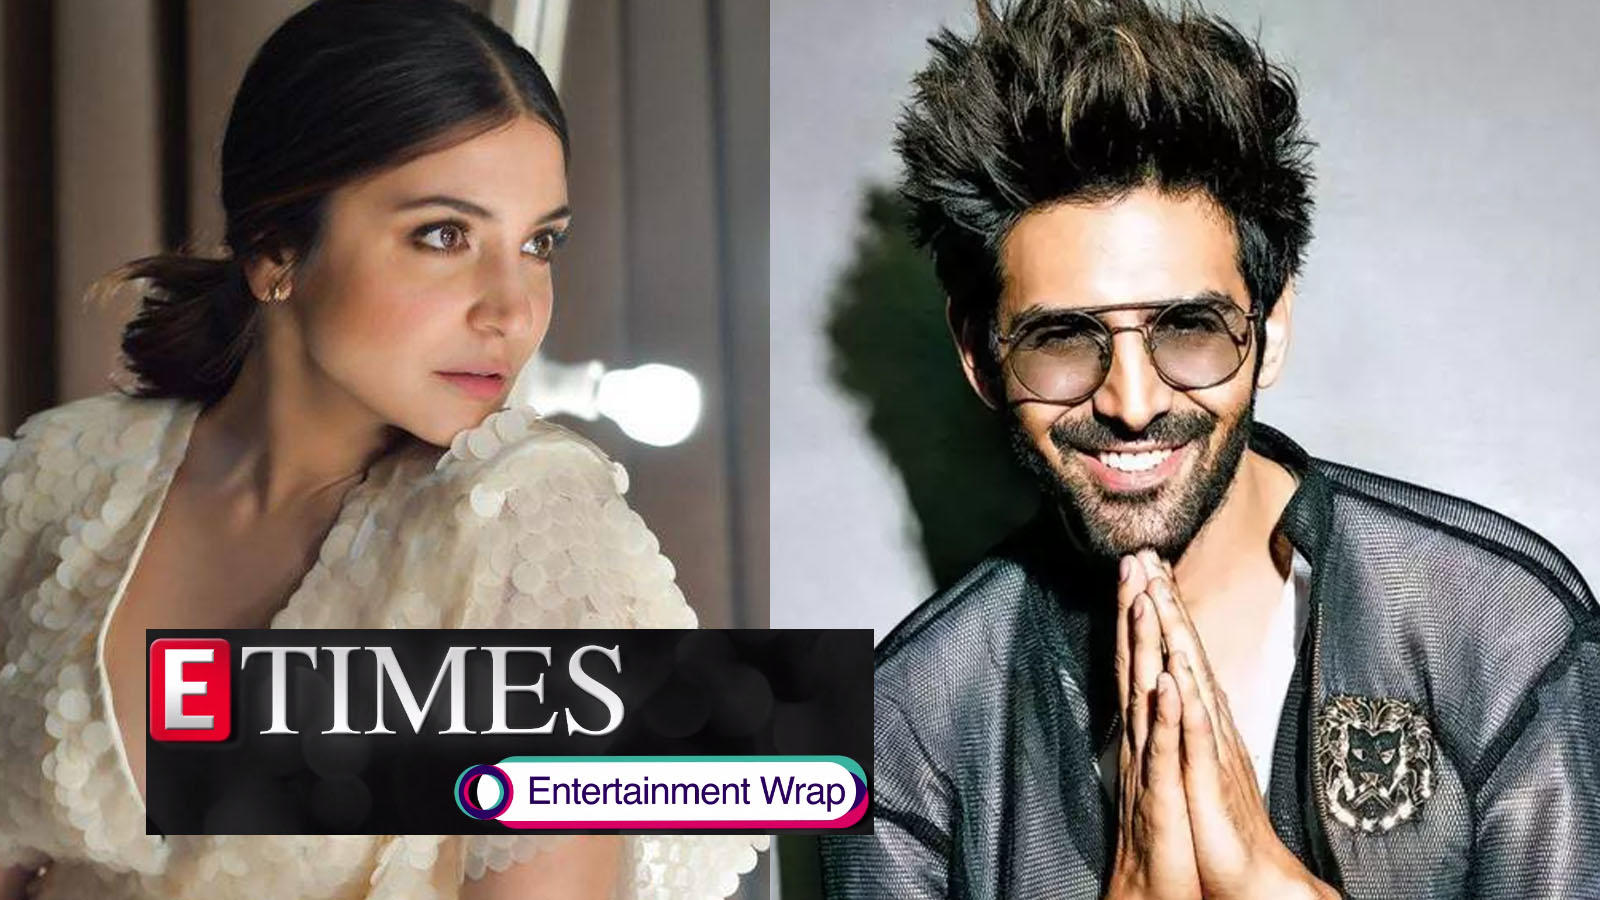 anushka-sharma-raises-concern-over-plight-of-migrant-labourers-kartik-aaryan-donates-rs-1-crore-to-pm-cares-fund-and-more-